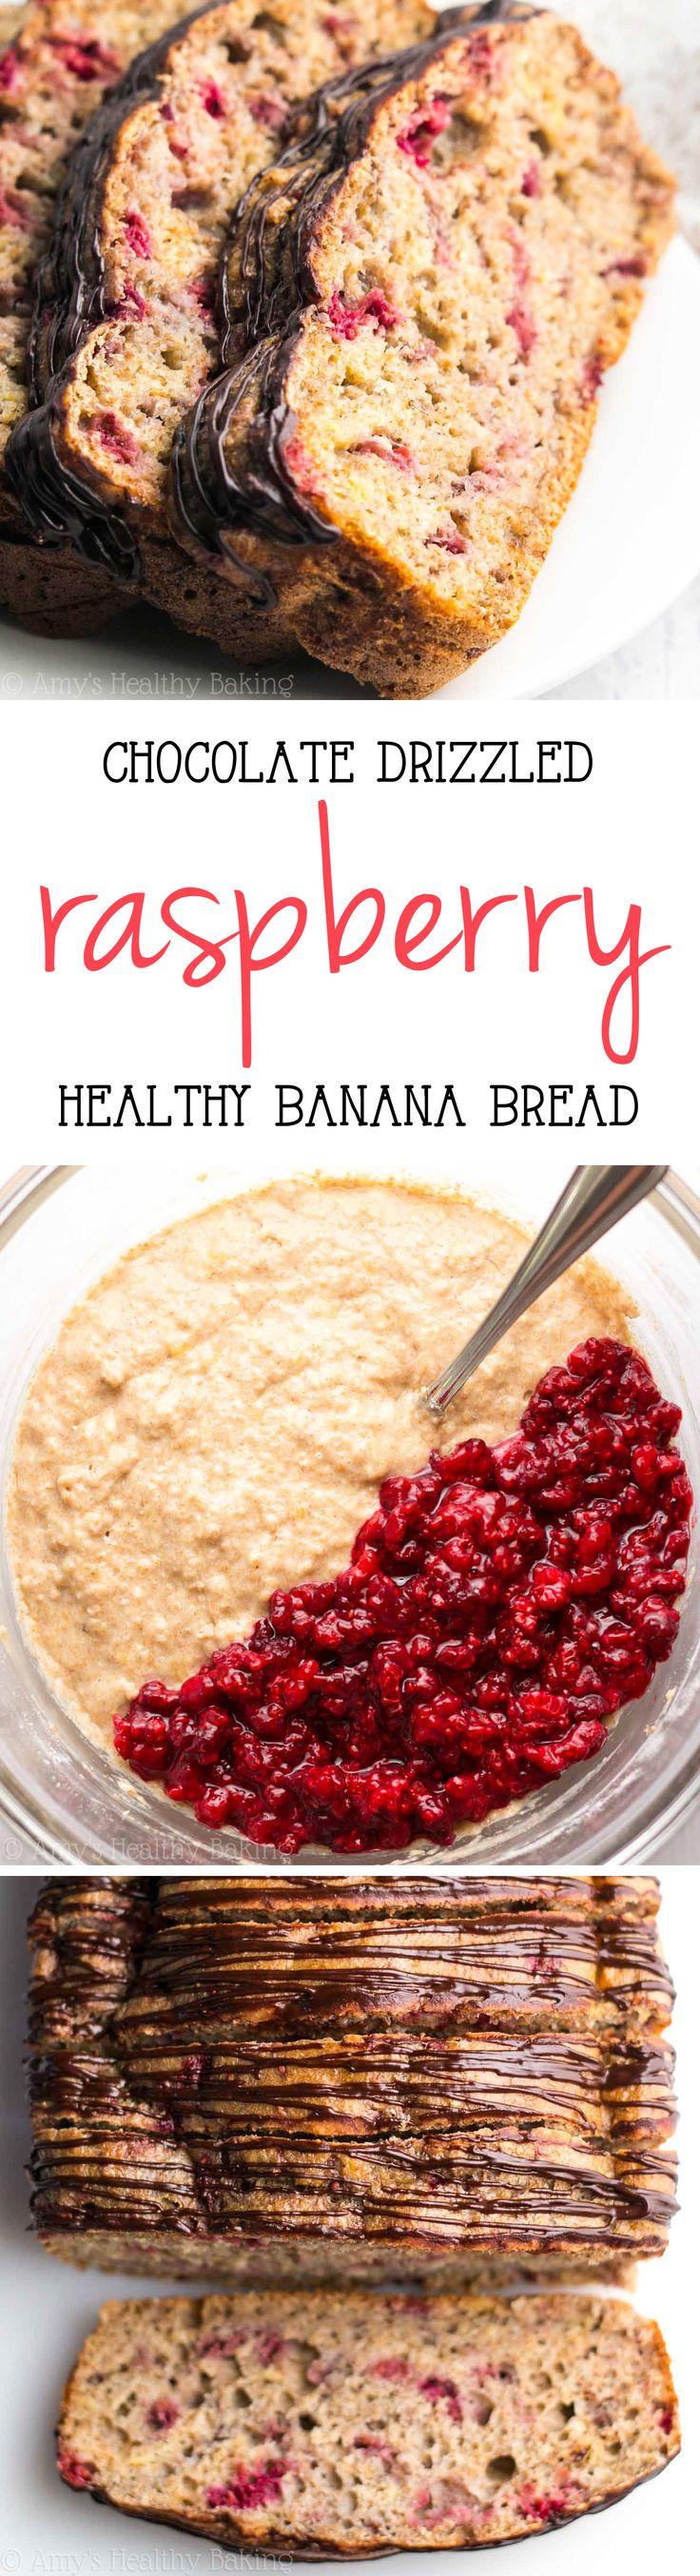 Slow Cooker: Chocolate Drizzled Raspberry Banana Bread